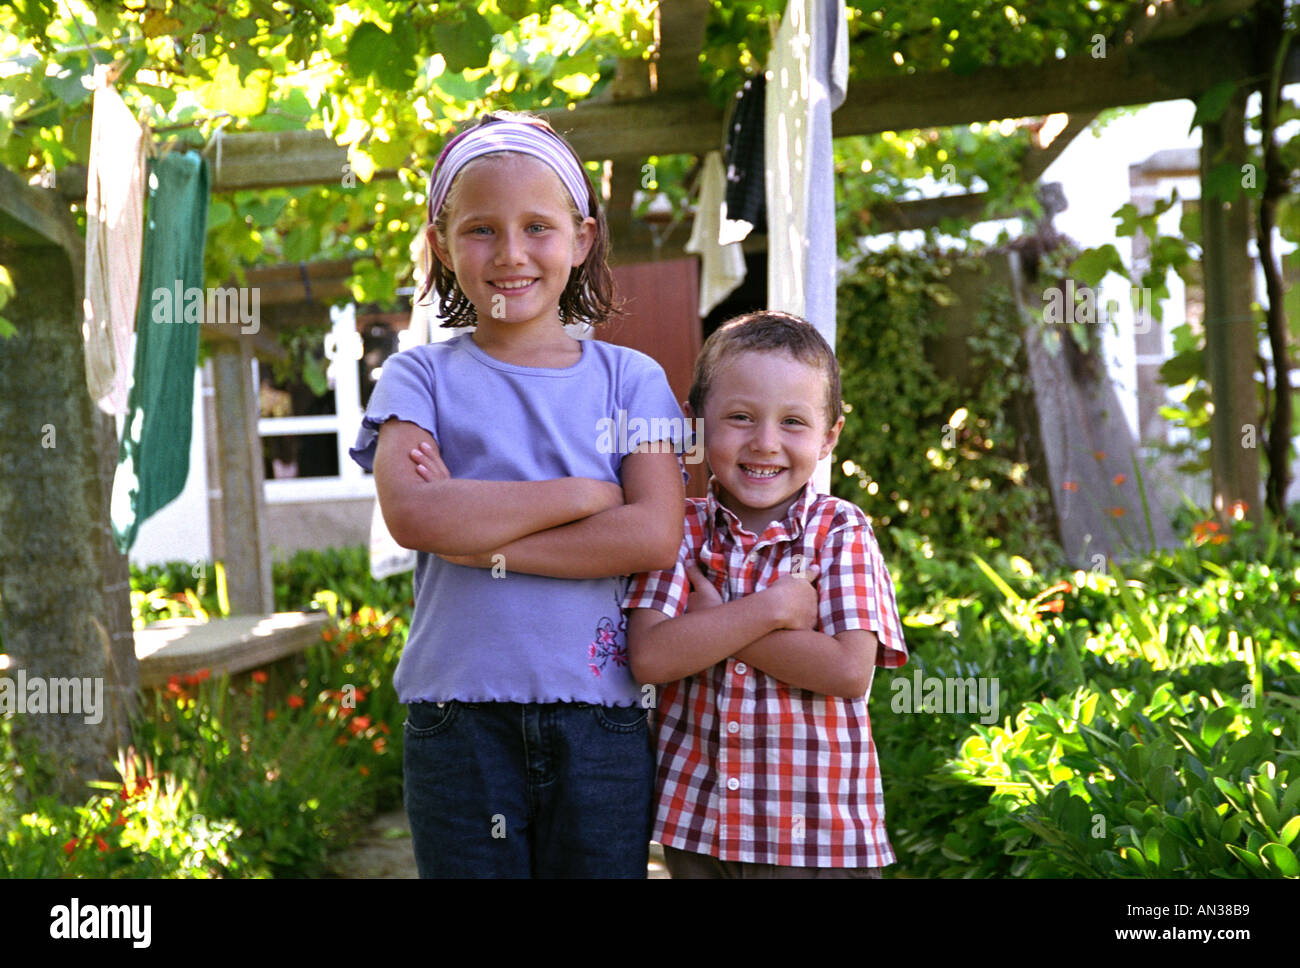 Brother and sister posing in the garden - Stock Image